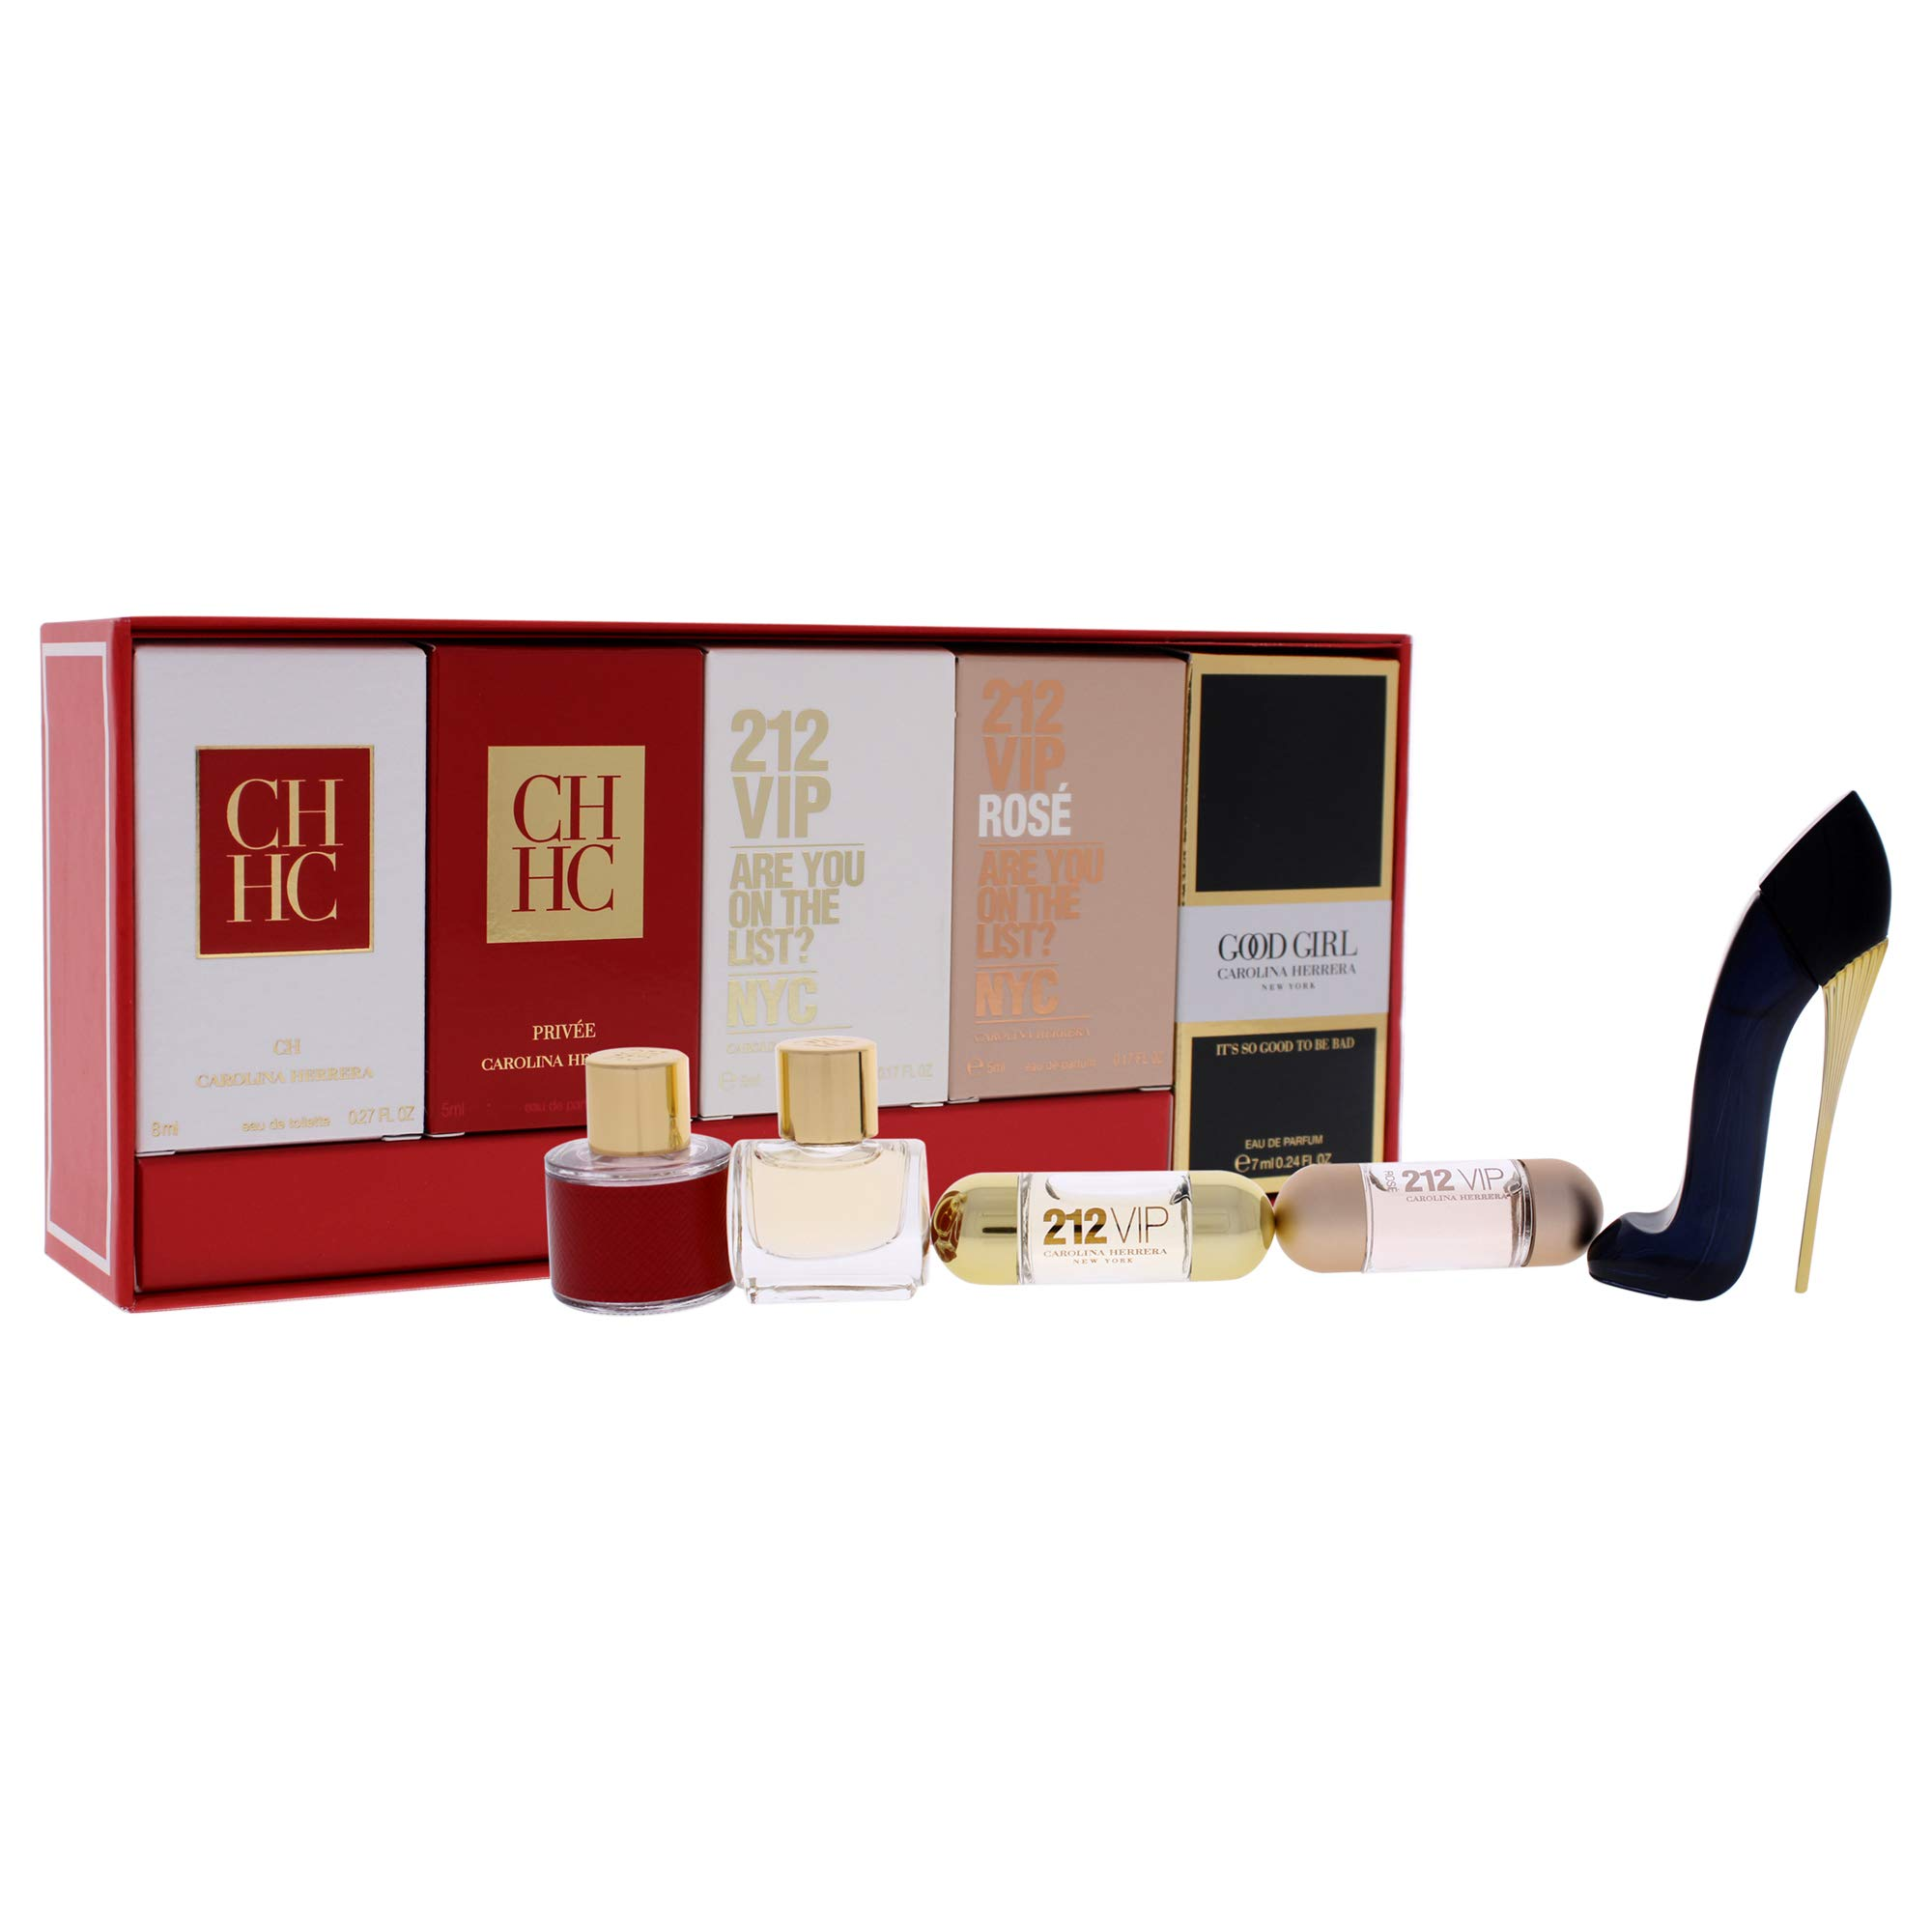 Carolina Herrera Fragrances by Carolina Herrera for Women - 5 Pc Mini Gift Set 8ml CH EDT Splash, 5m